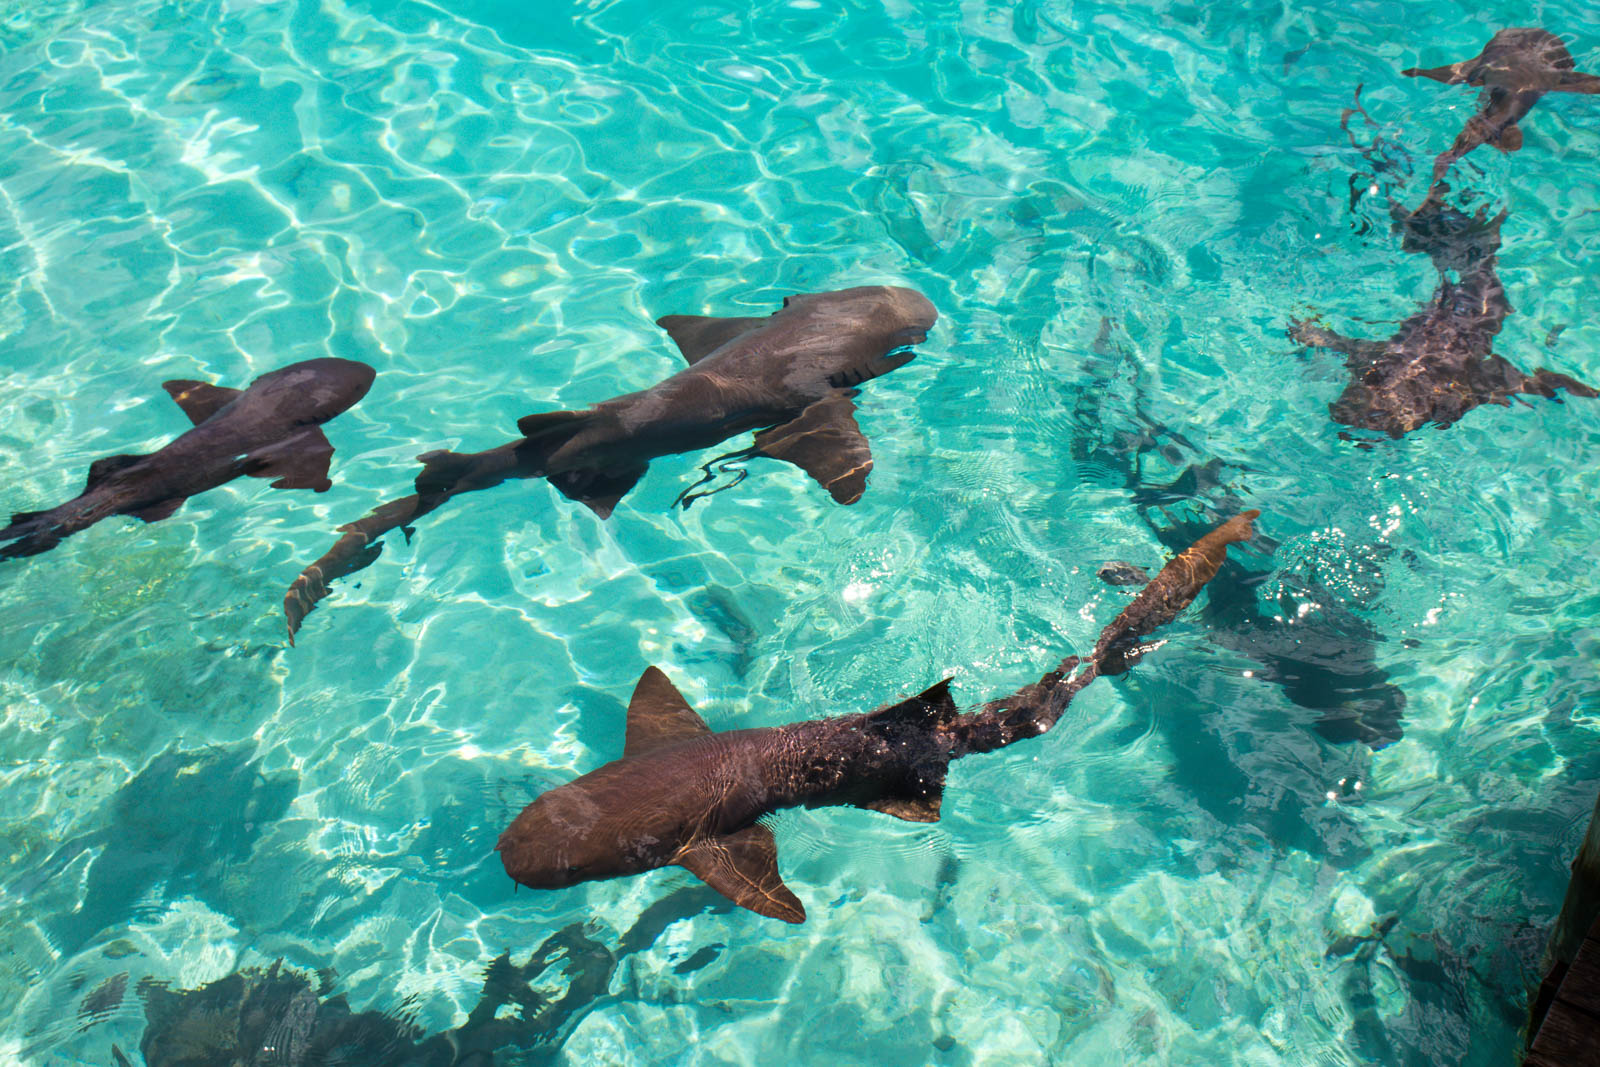 The Compass Cay sharks are a welcome addition to any day trip to Bahamas from Fort Lauderdale. See the Compass Cay Marina on any day cruise to Bahamas from Fort Lauderdale.